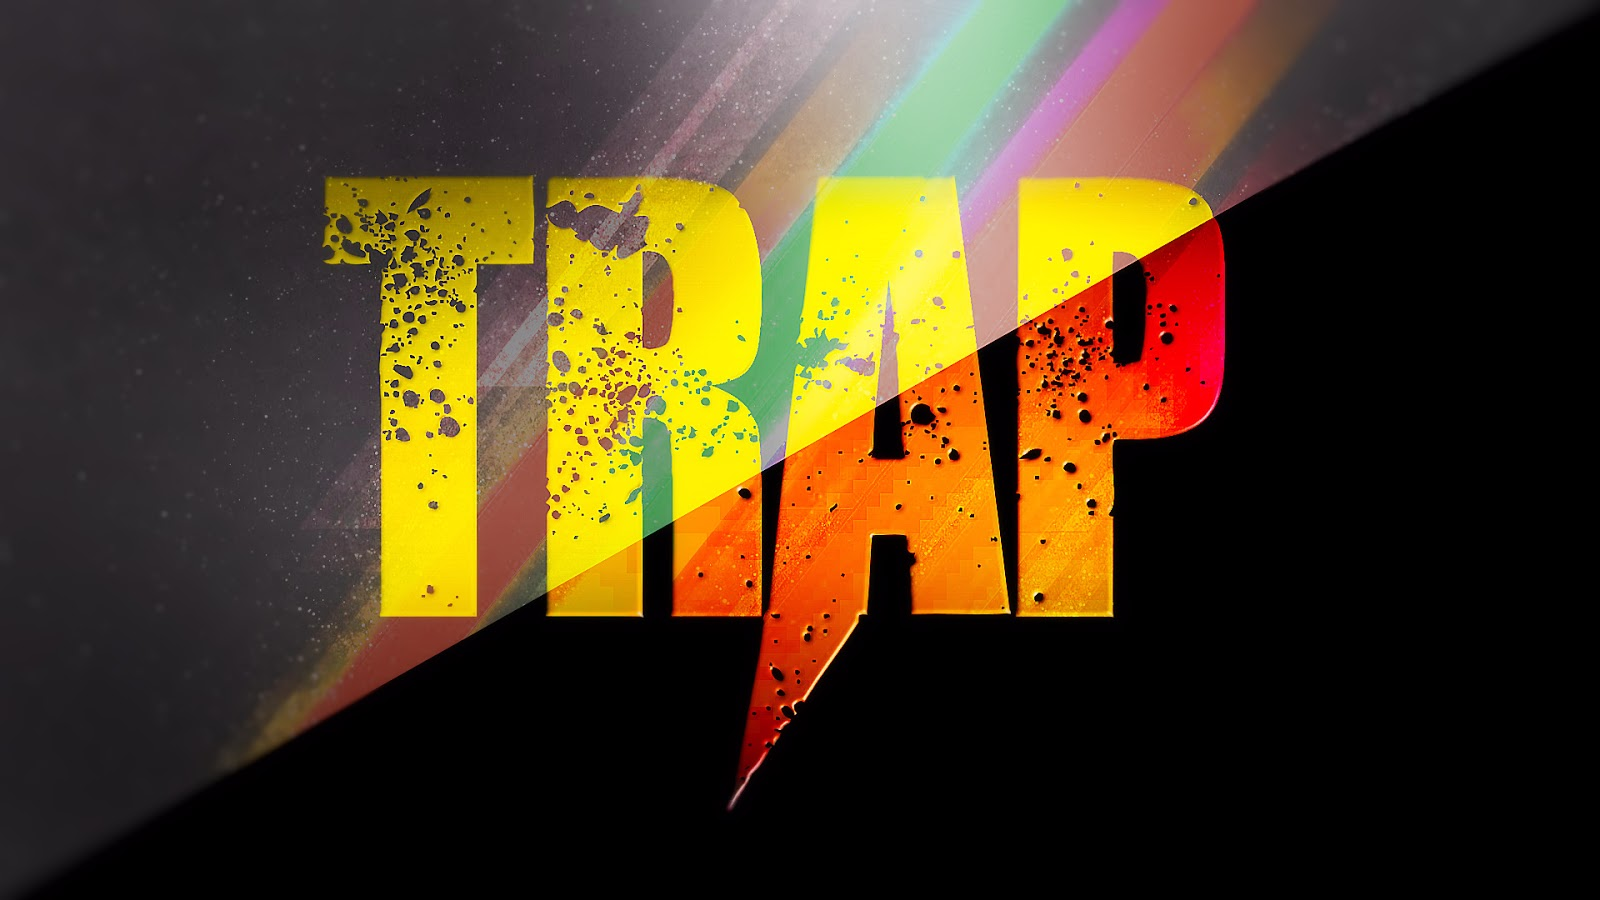 Trap Hd Wallpaper 1920x1080